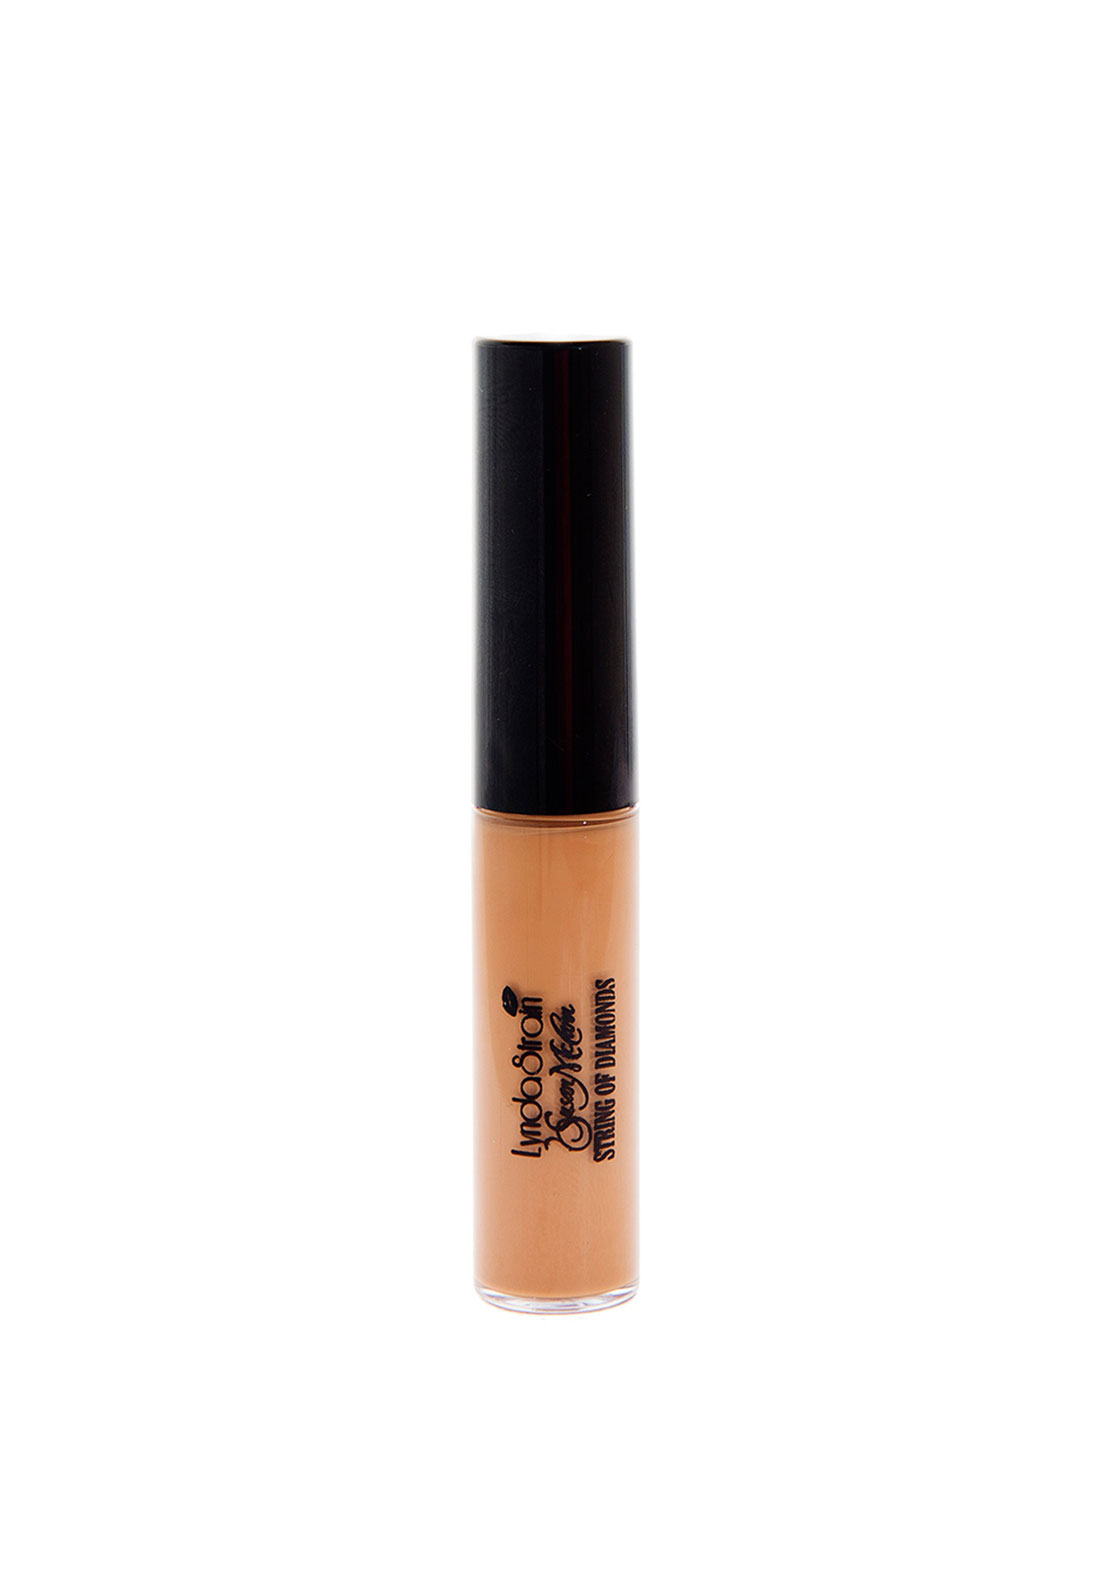 Susan McCann String of Diamonds by Lynda Strain Concealer, Diamond 3